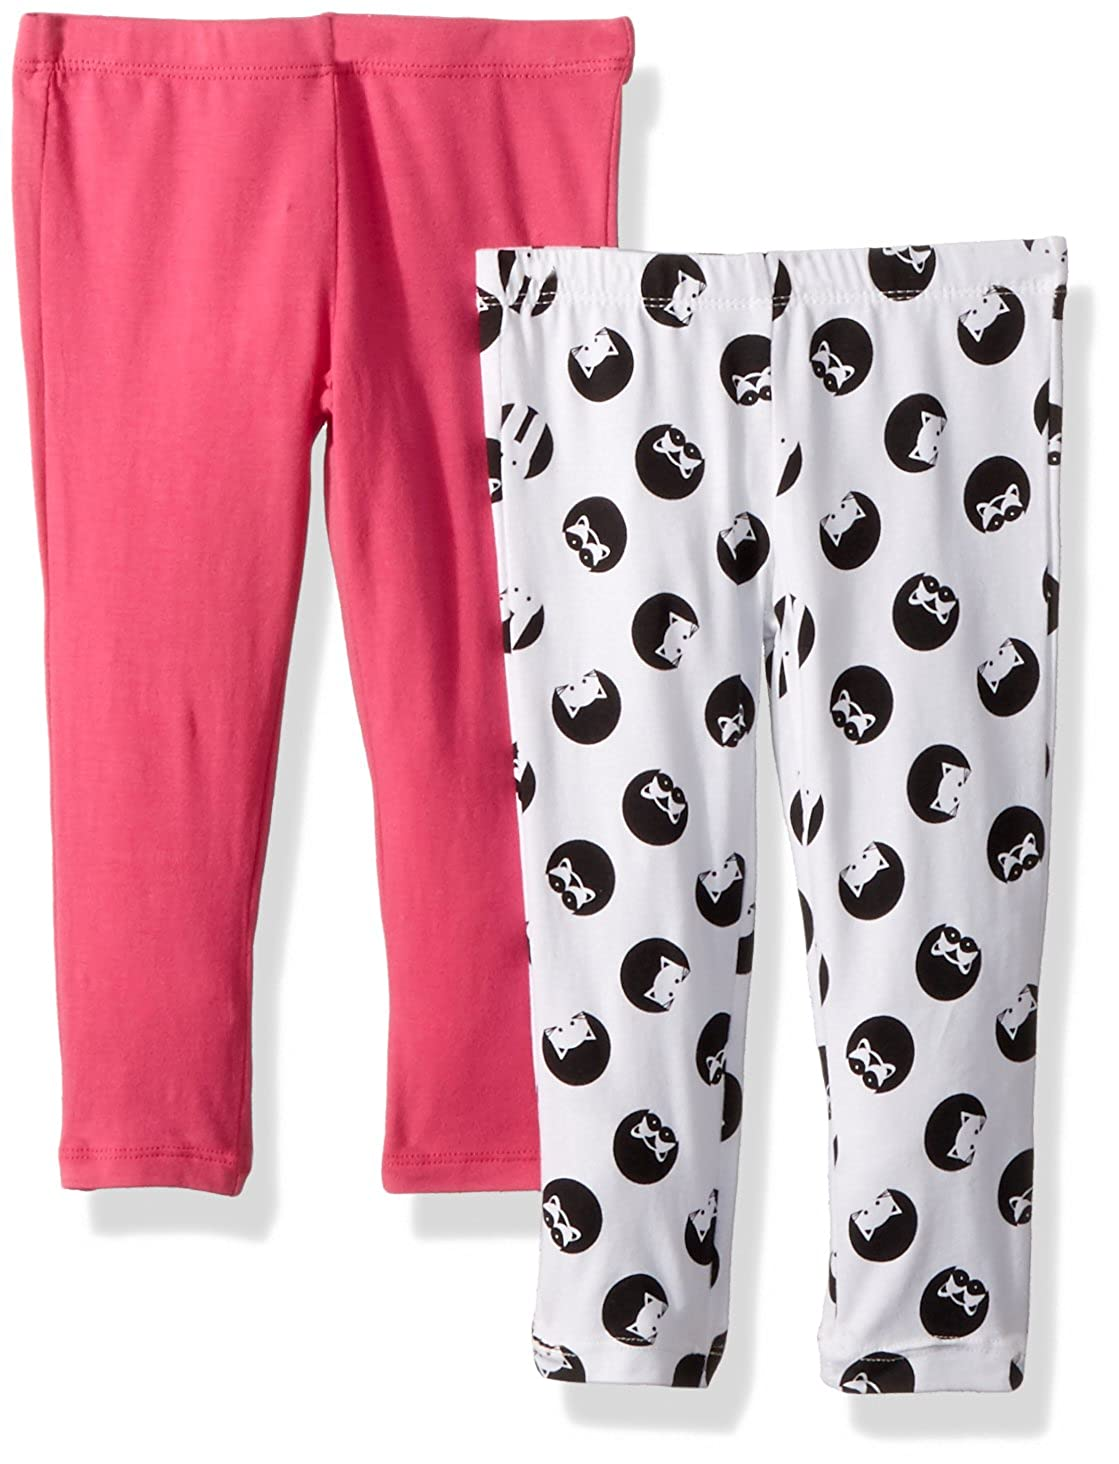 c98aee4818e Amazon.com  Flapdoodles 2 Pack Girls Printed and Solid Legging  Clothing